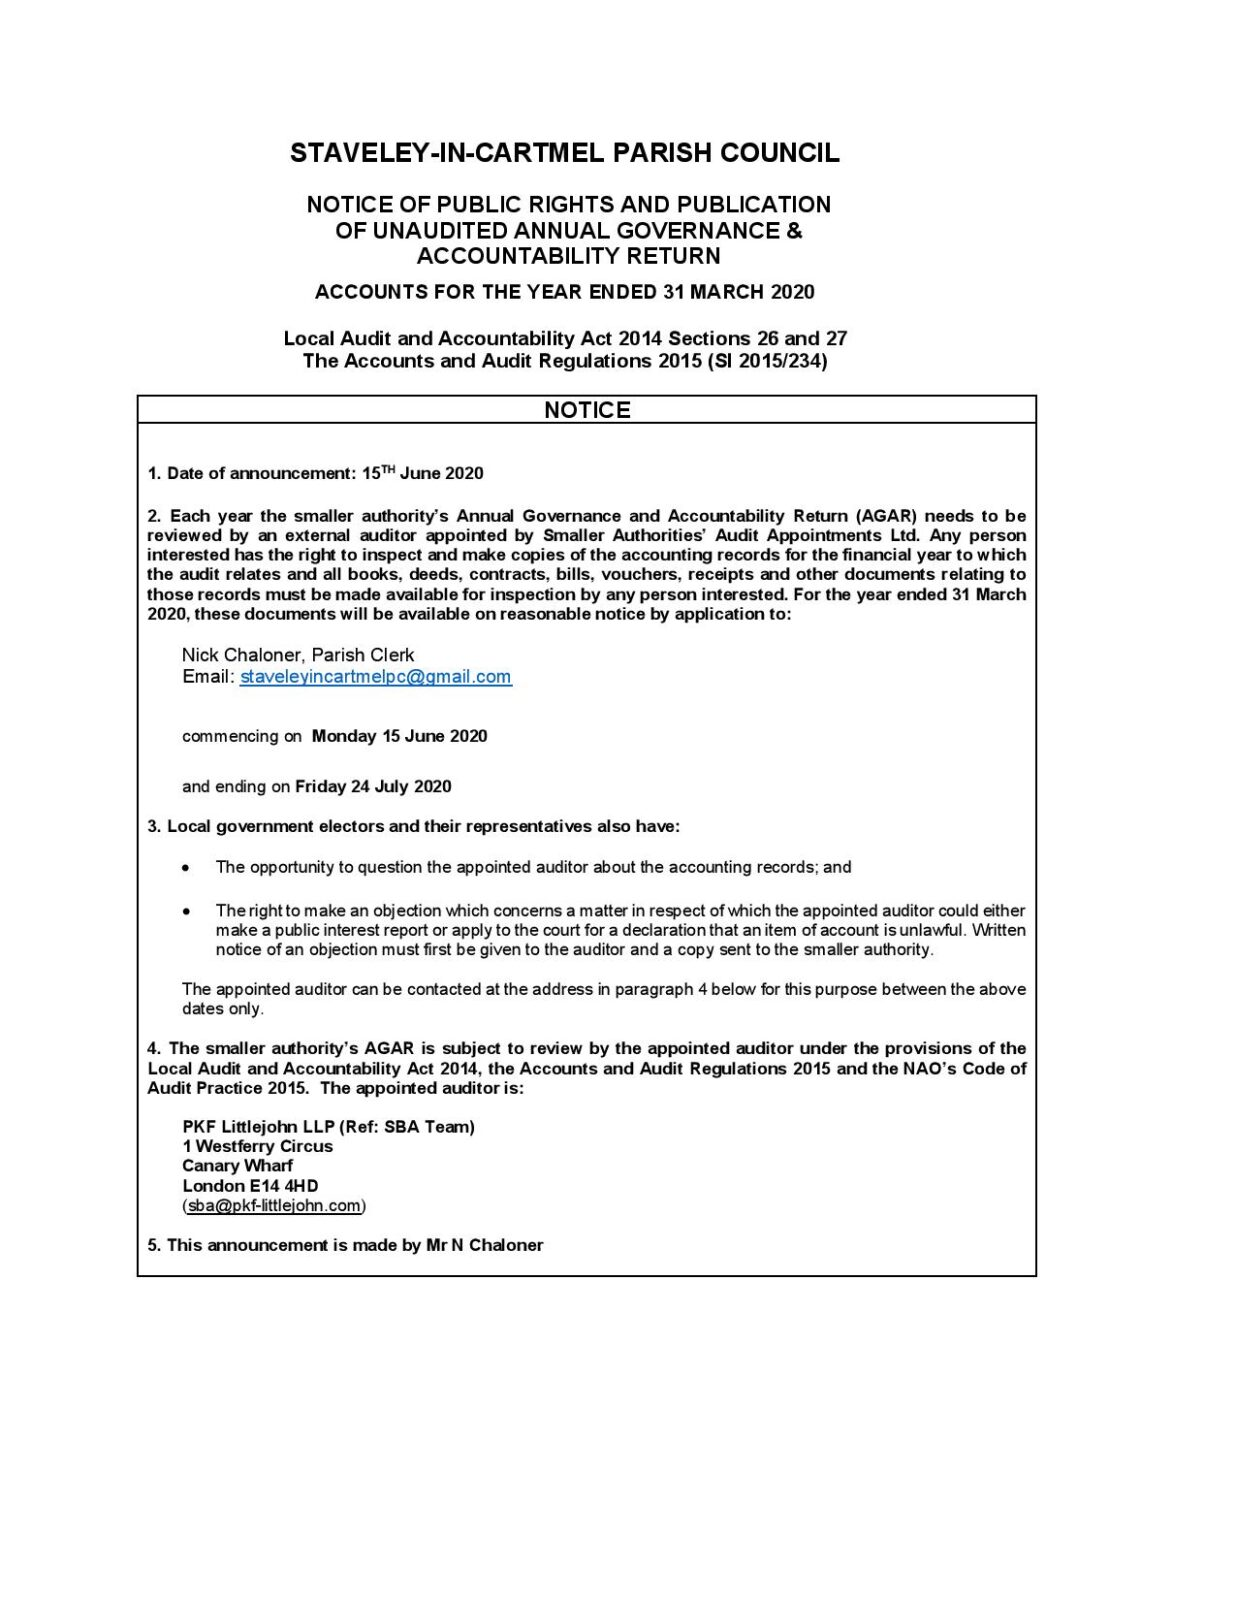 Notice of public rights and publication of unaudited AGAR 2020